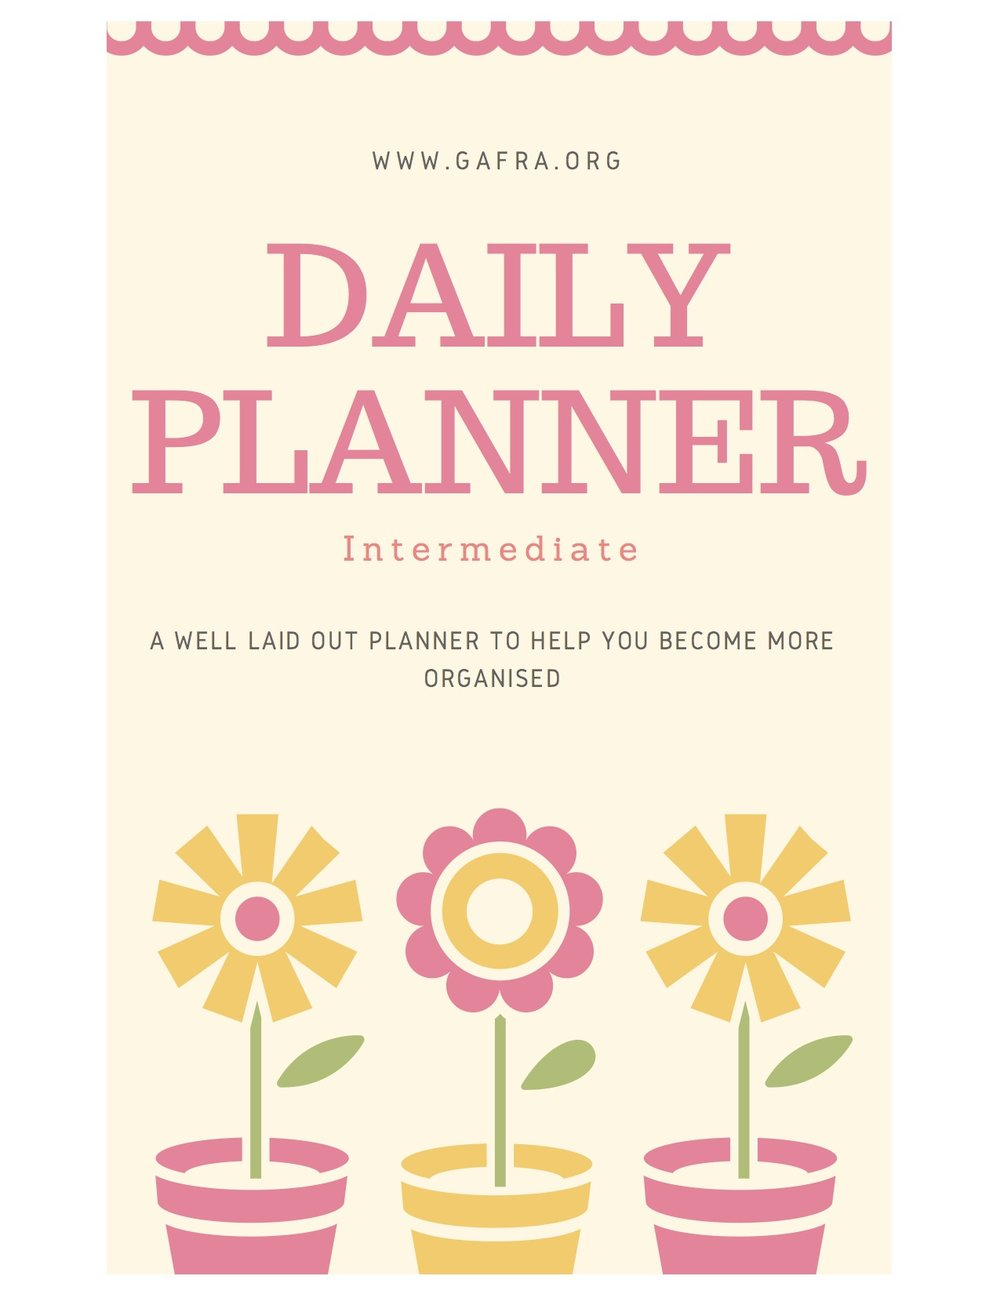 Get your Planner and learn more about me. www.gafra.org